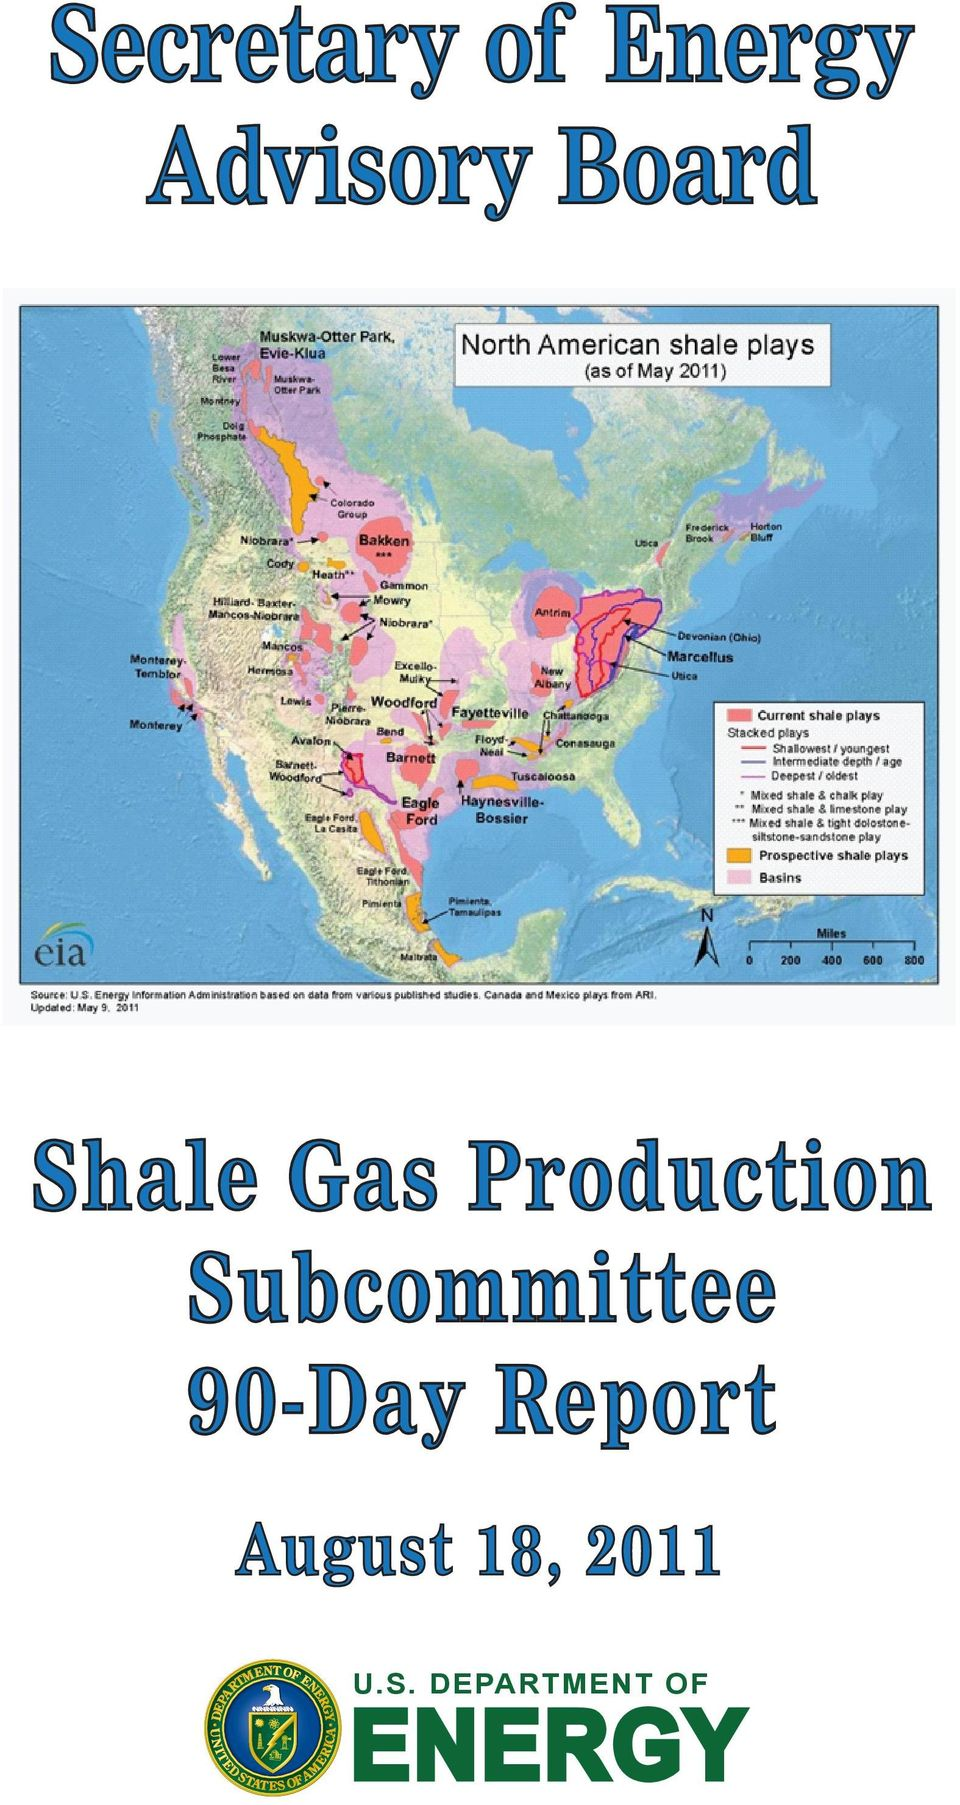 Gas Subcommittee 90-Day Report